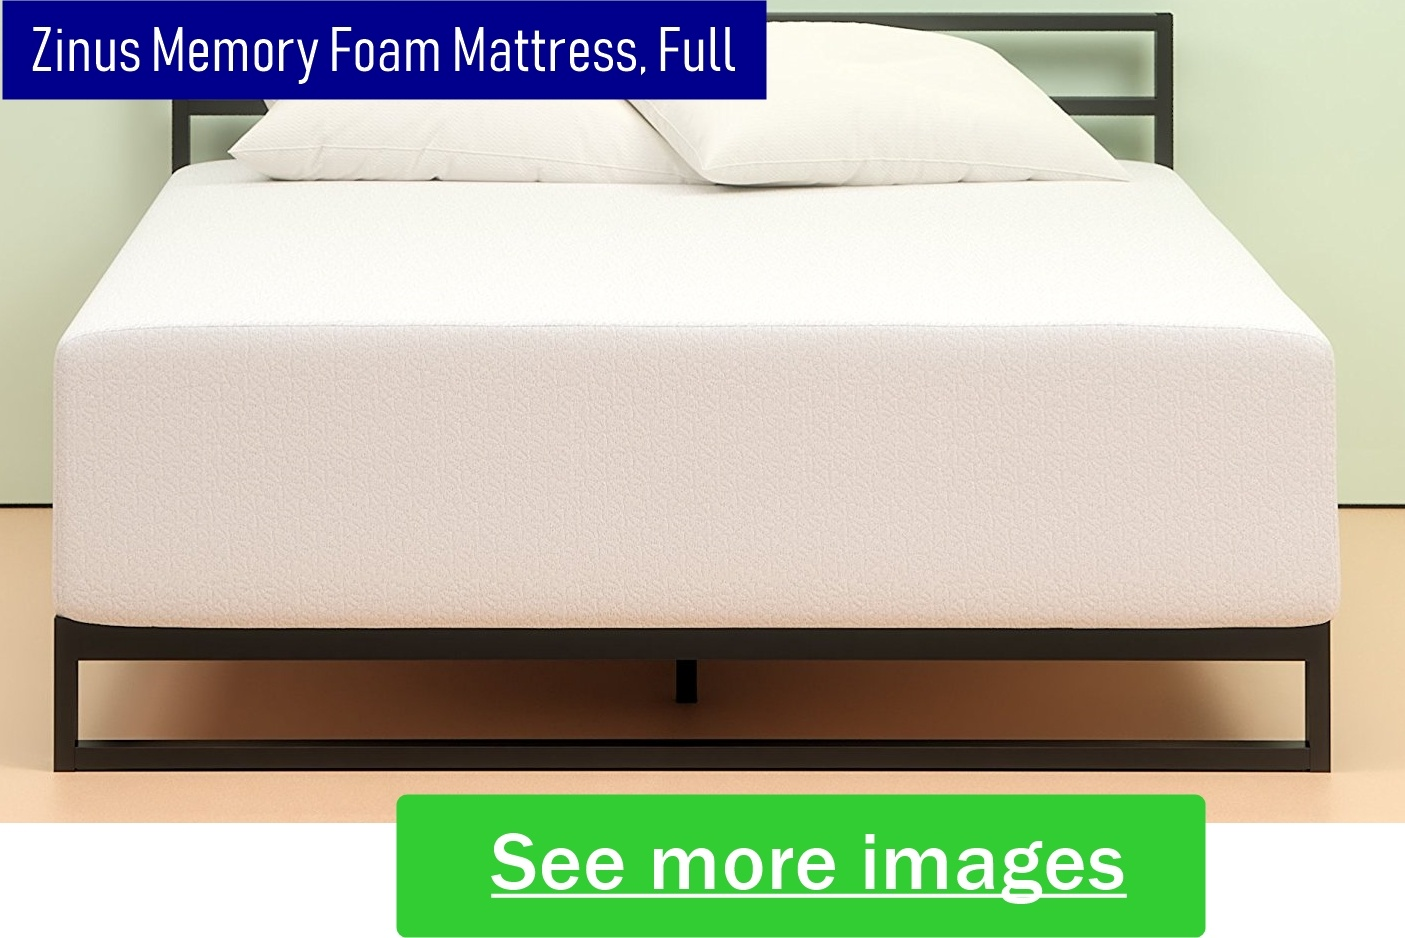 Best Foam Matress Best Mattress For Side Sleepers 2019 Reviews Guide 10 Unbiased